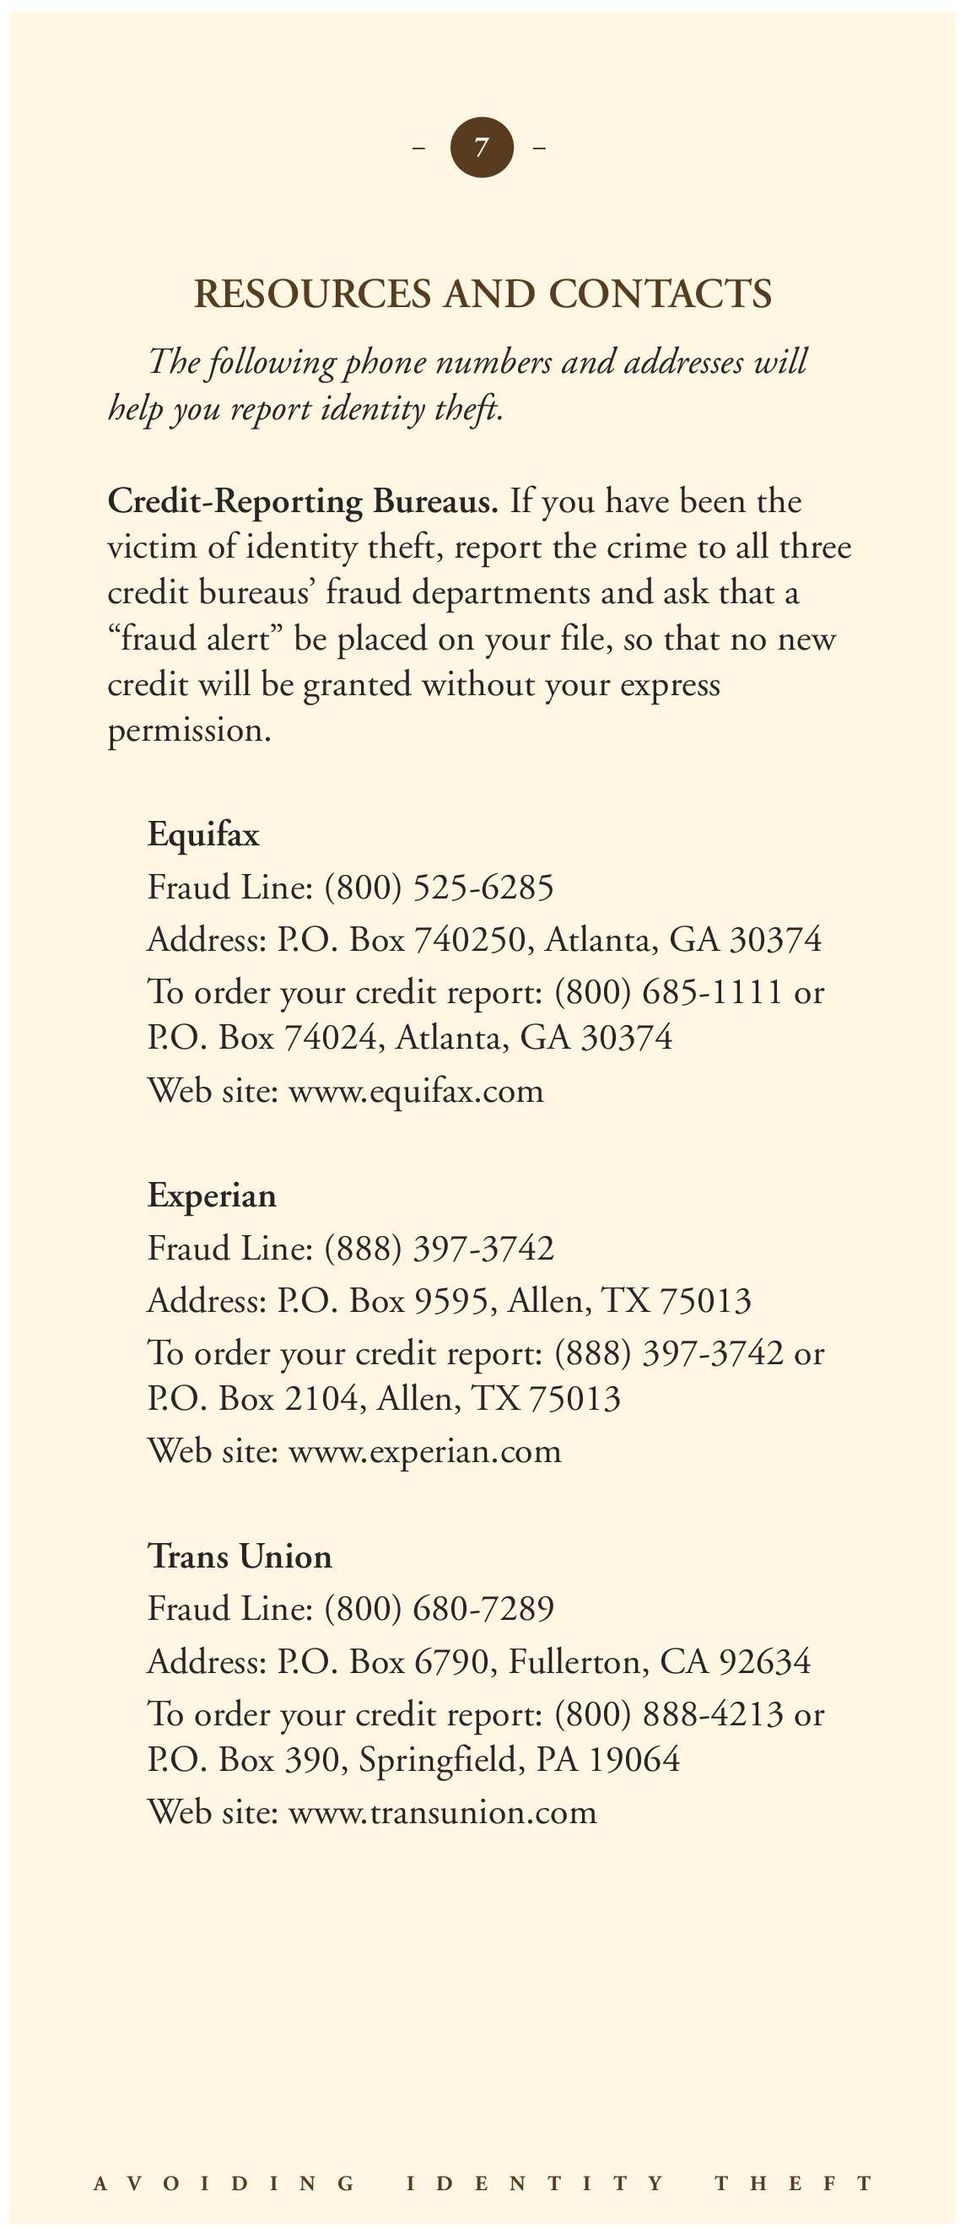 without your express permission. Equifax Fraud Line: (800) 525-6285 Address: P.O. Box 740250, Atlanta, GA 30374 To order your credit report: (800) 685-1111 or P.O. Box 74024, Atlanta, GA 30374 Web site: www.